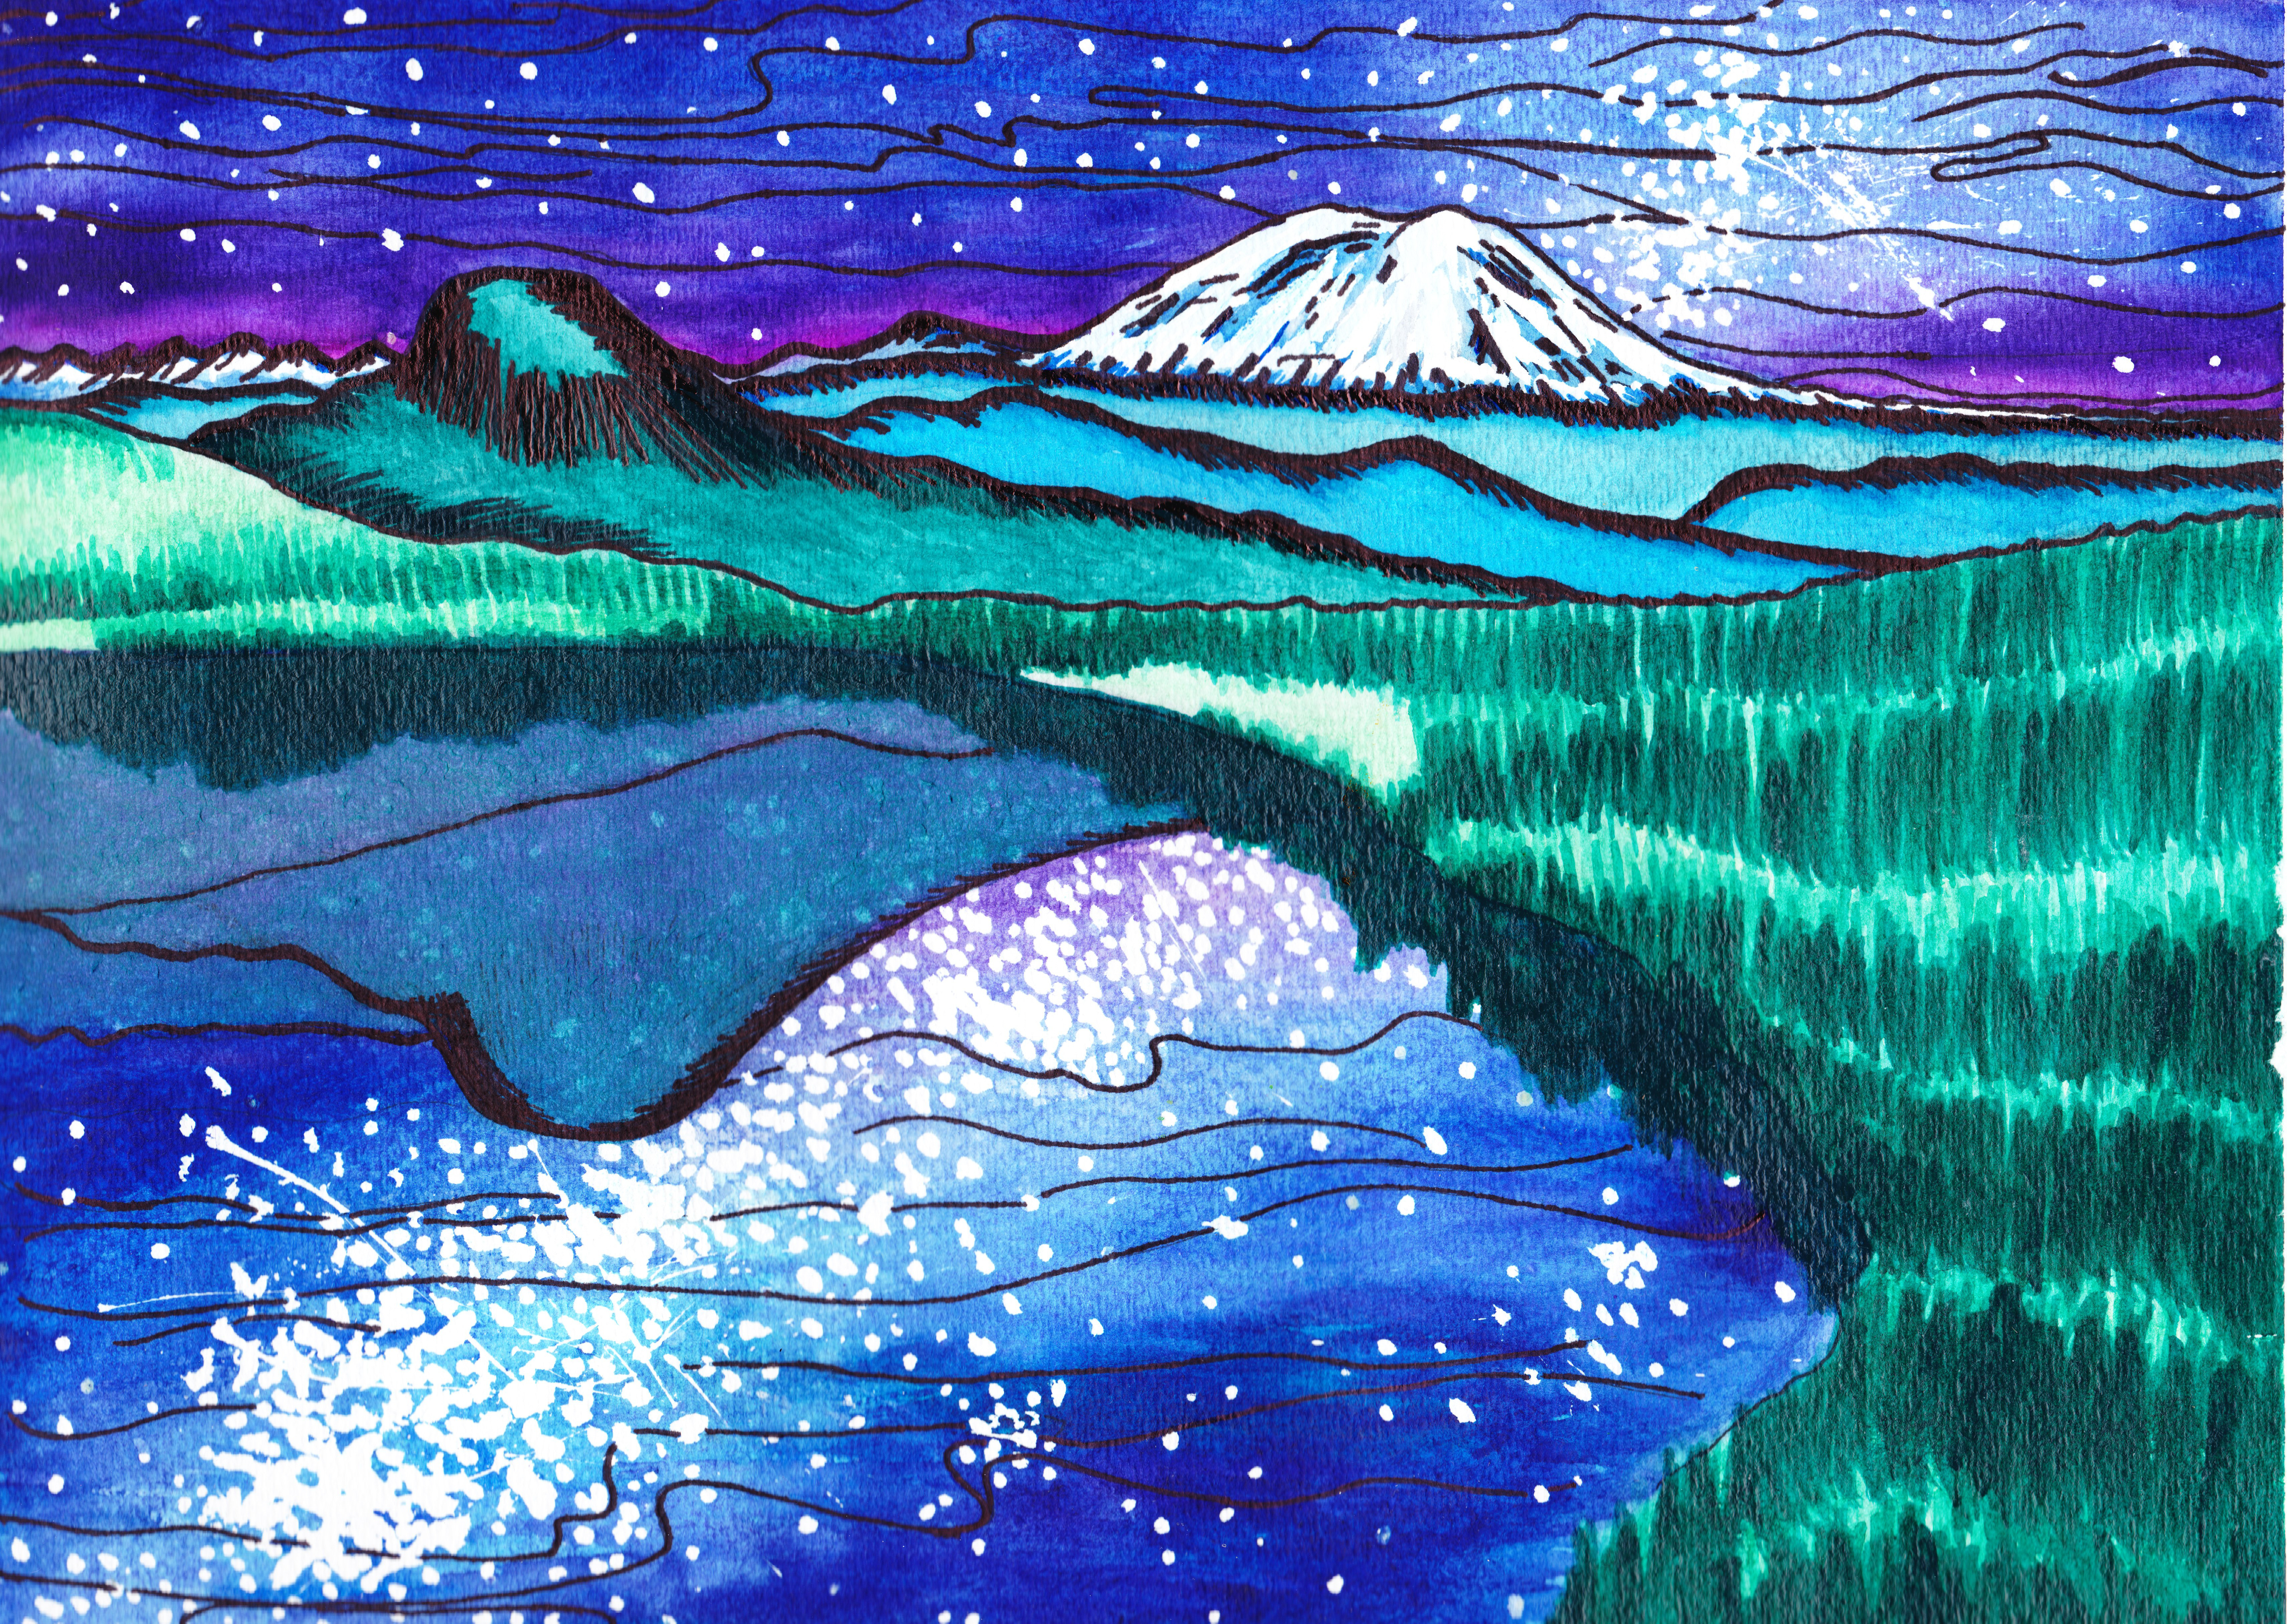 6848x4864 Summit Lake Starry Night, Watercolor Tamarascameras